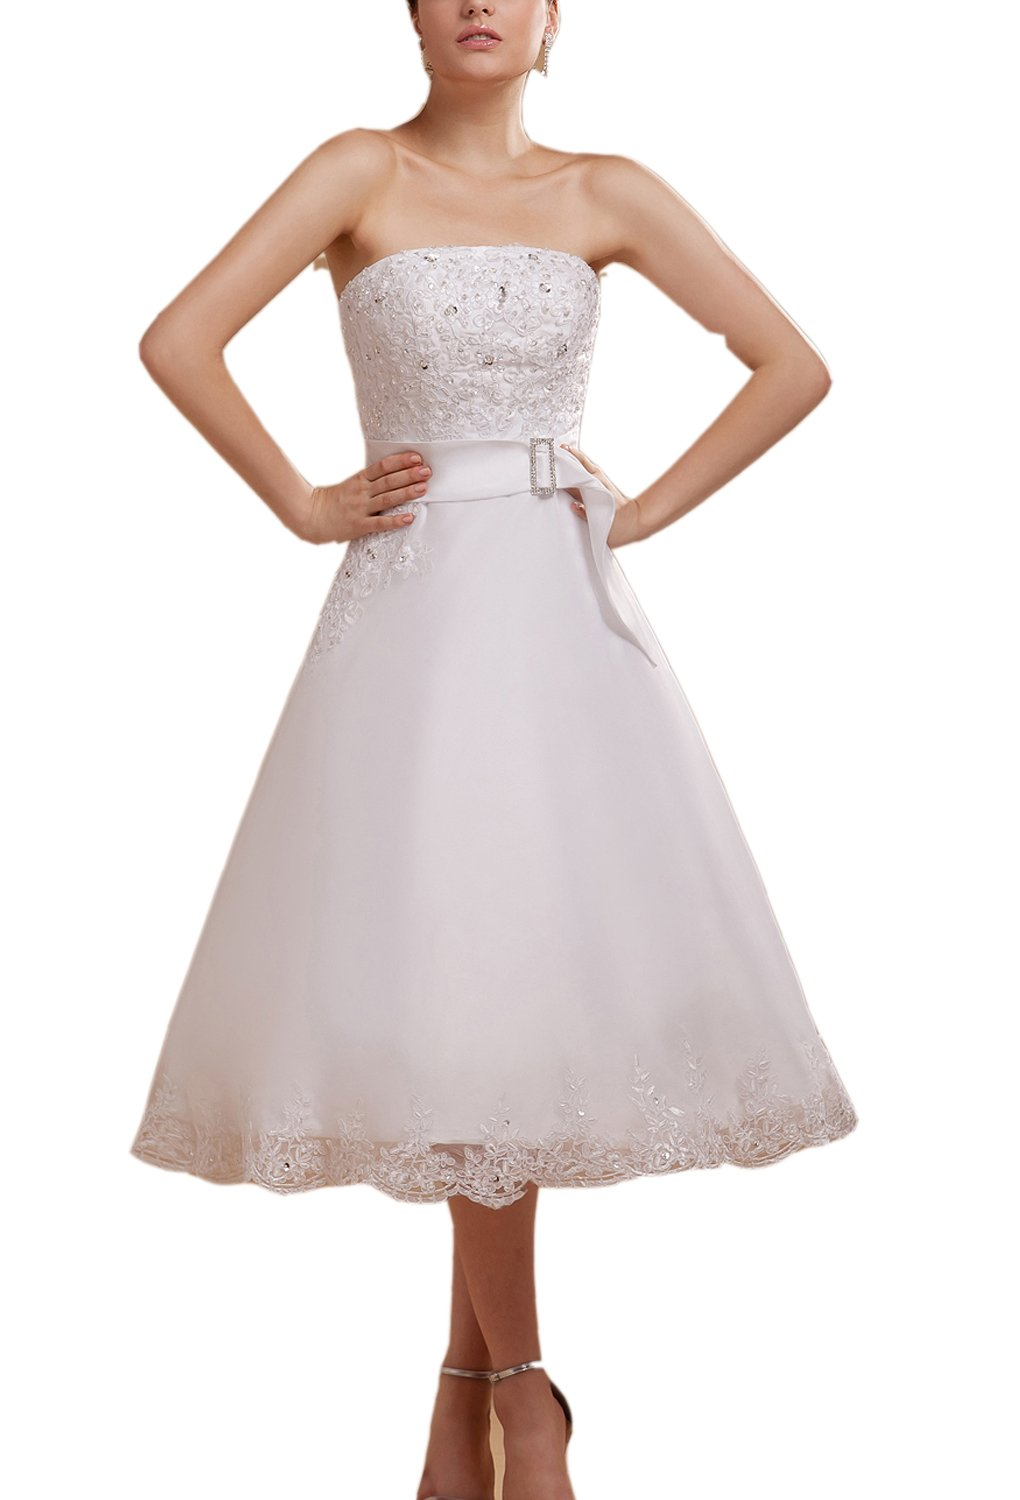 Albizia Women's Delicate A-line Knee-length Gerogia's Lace Wedding Dress